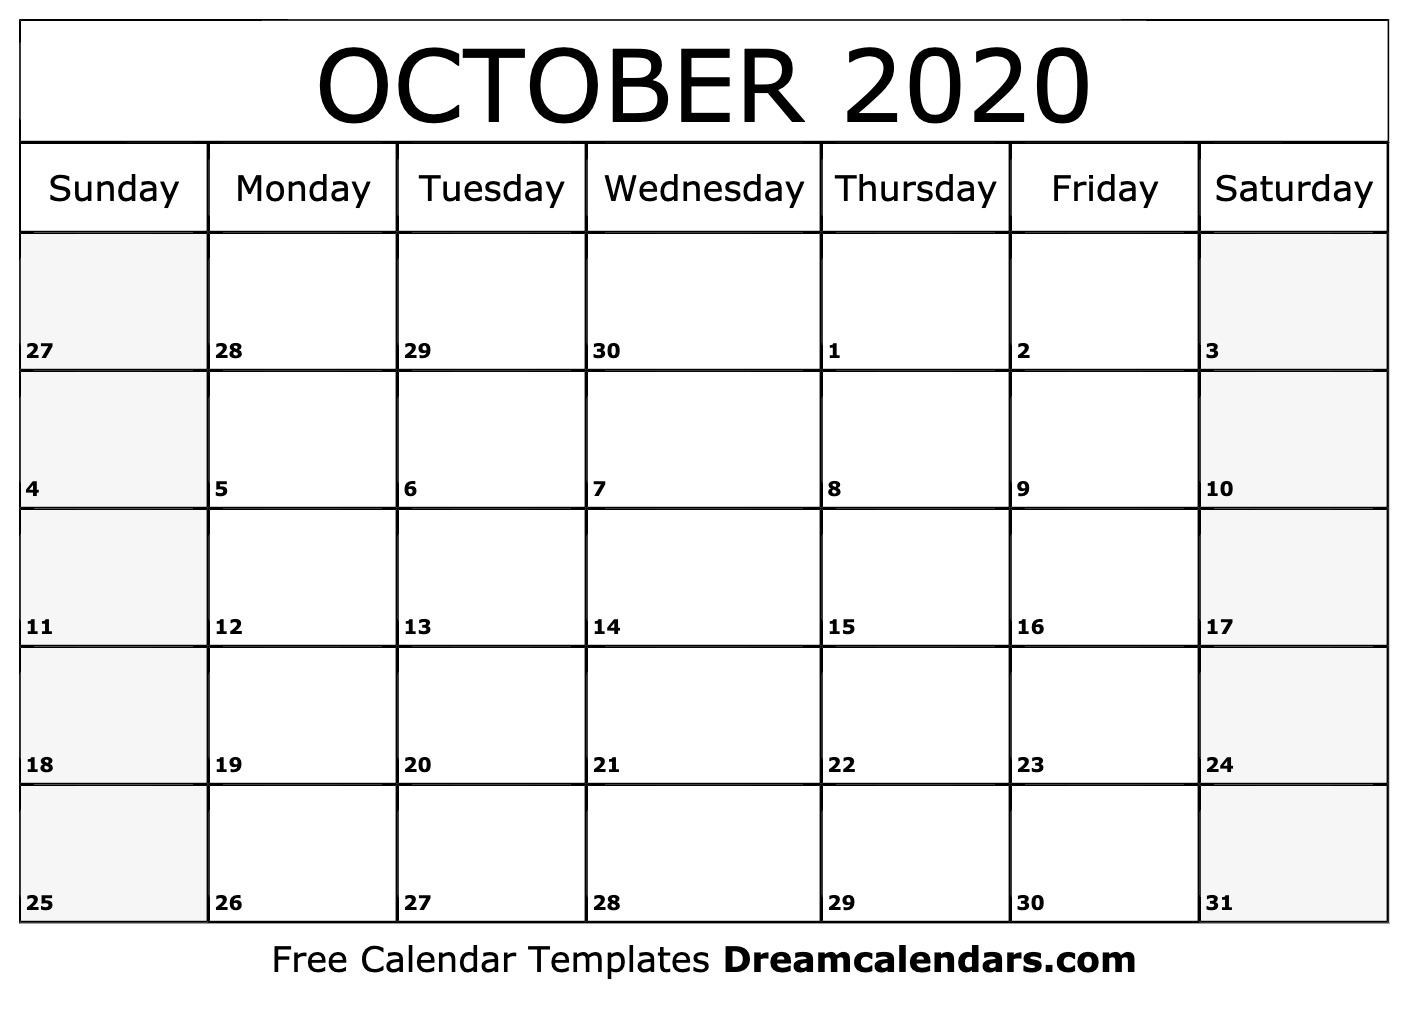 Oct Calendar 2020 Printable Printable October 2020 Calendar